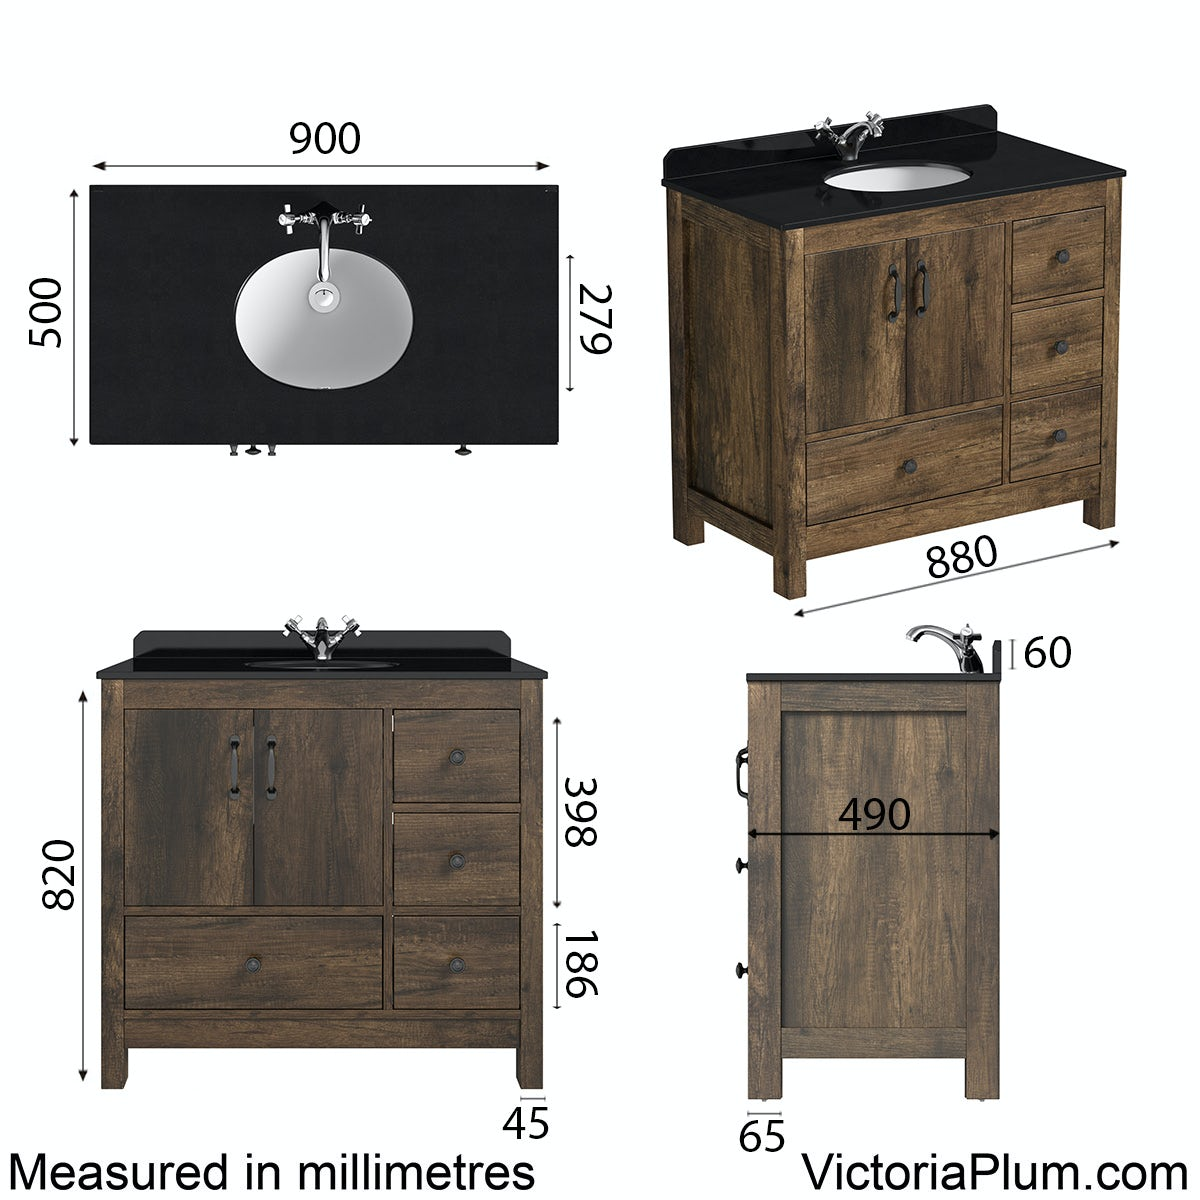 Dimensions for The Bath Co. Dalston vanity unit and black marble basin 900mm